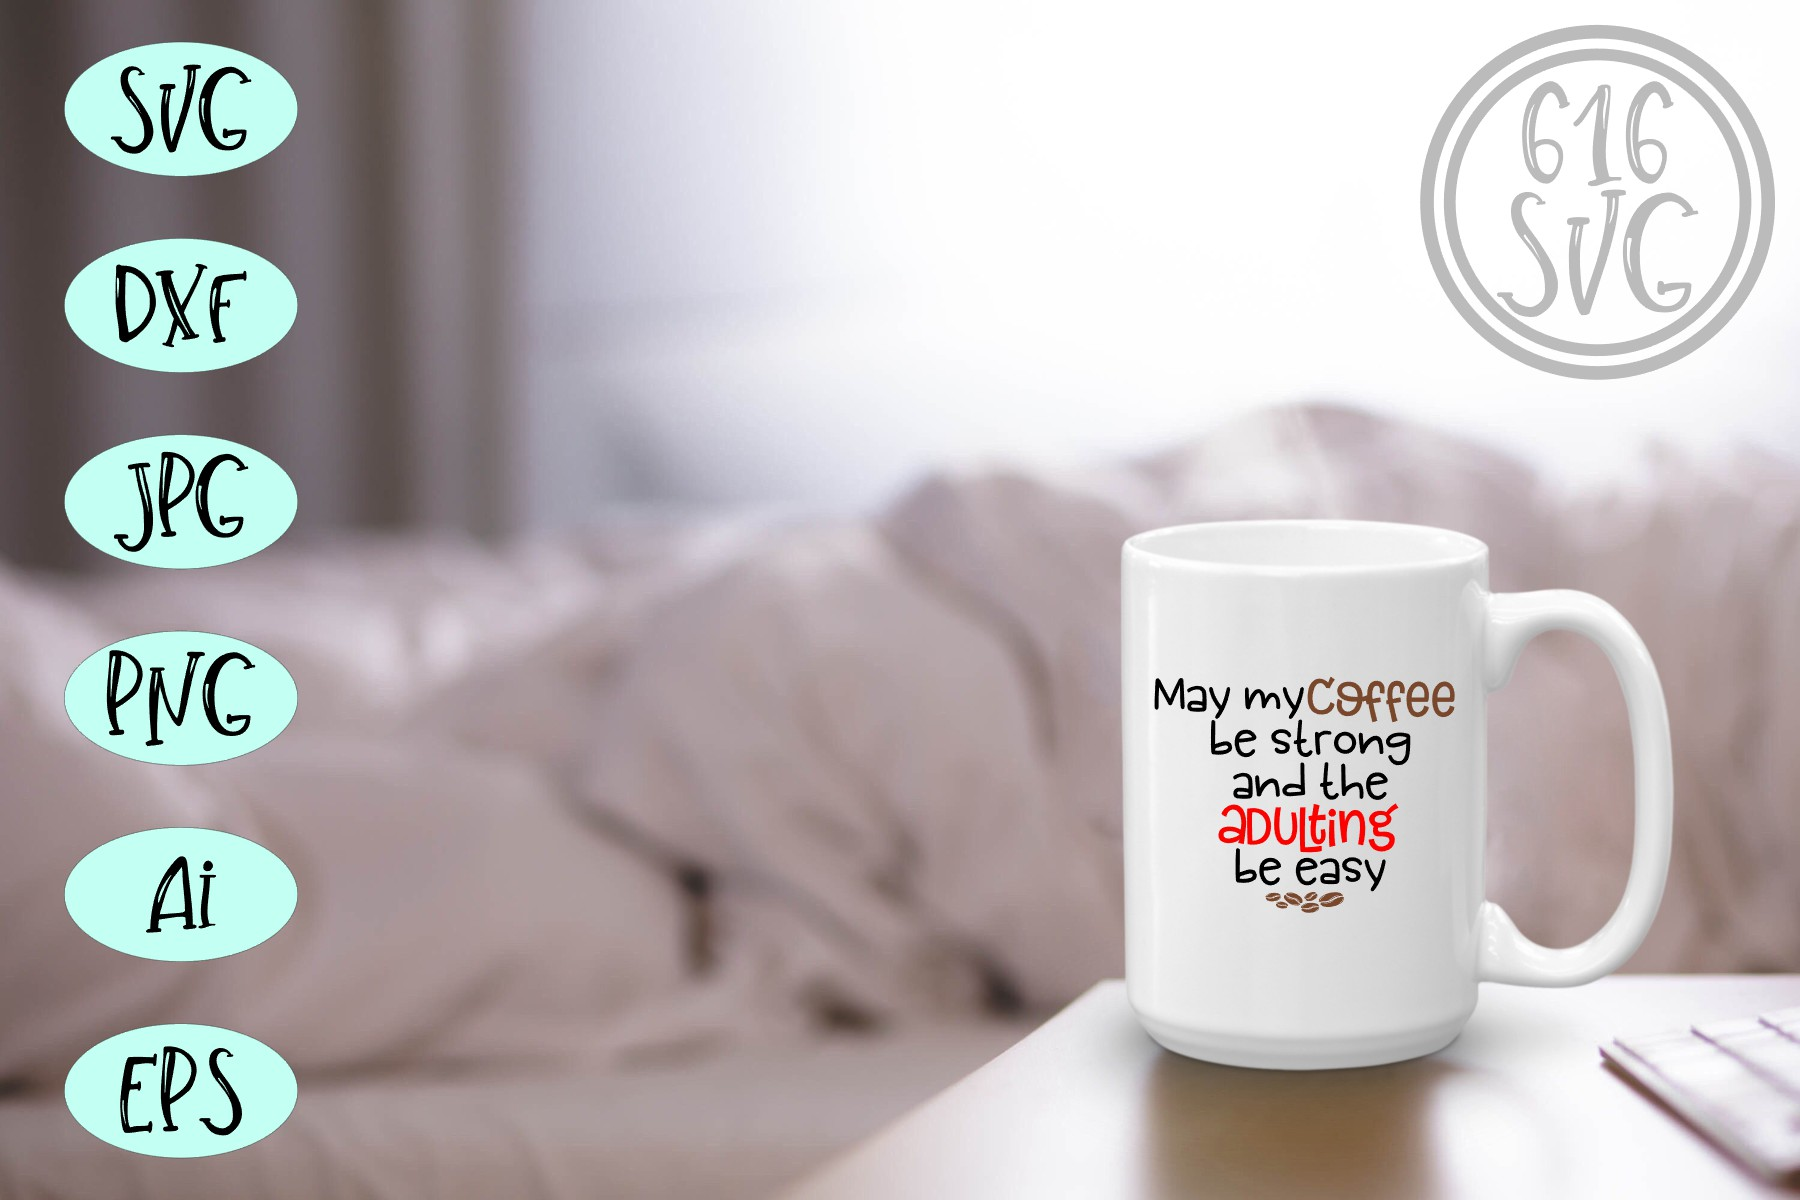 May my coffee be strong SVG, DXF, Ai, PNG example image 1